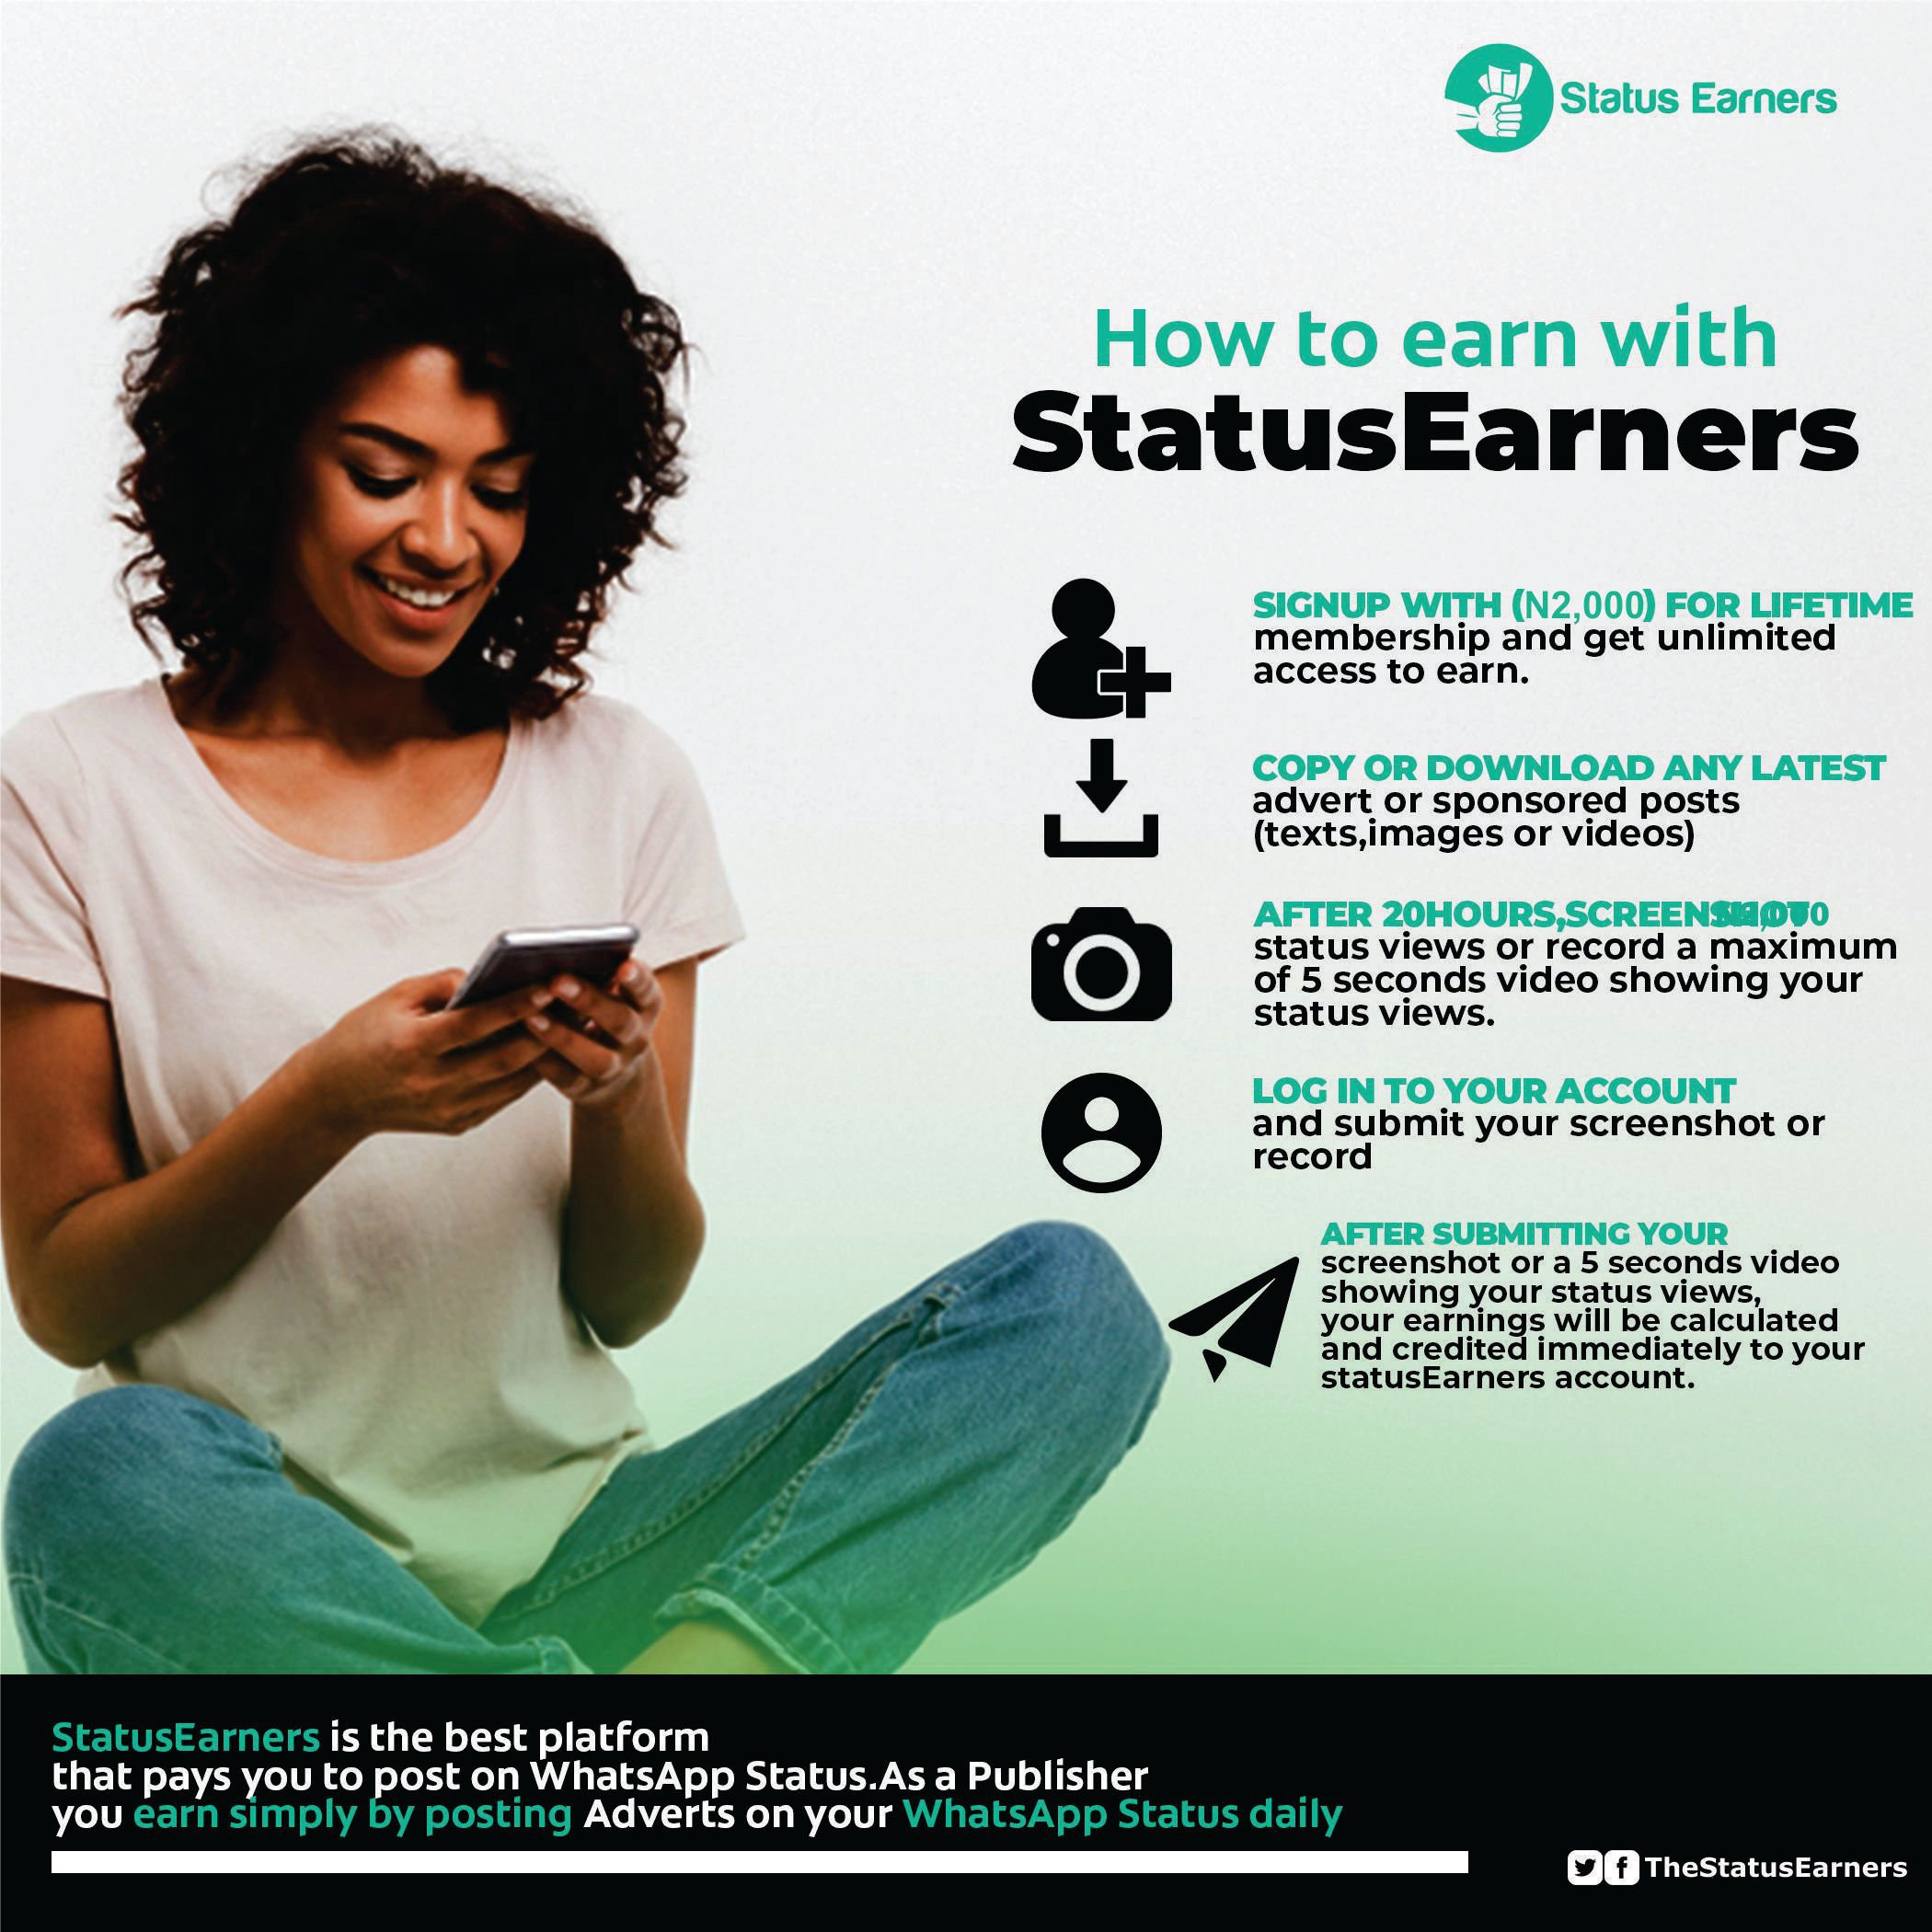 How to Earn on Status Earners